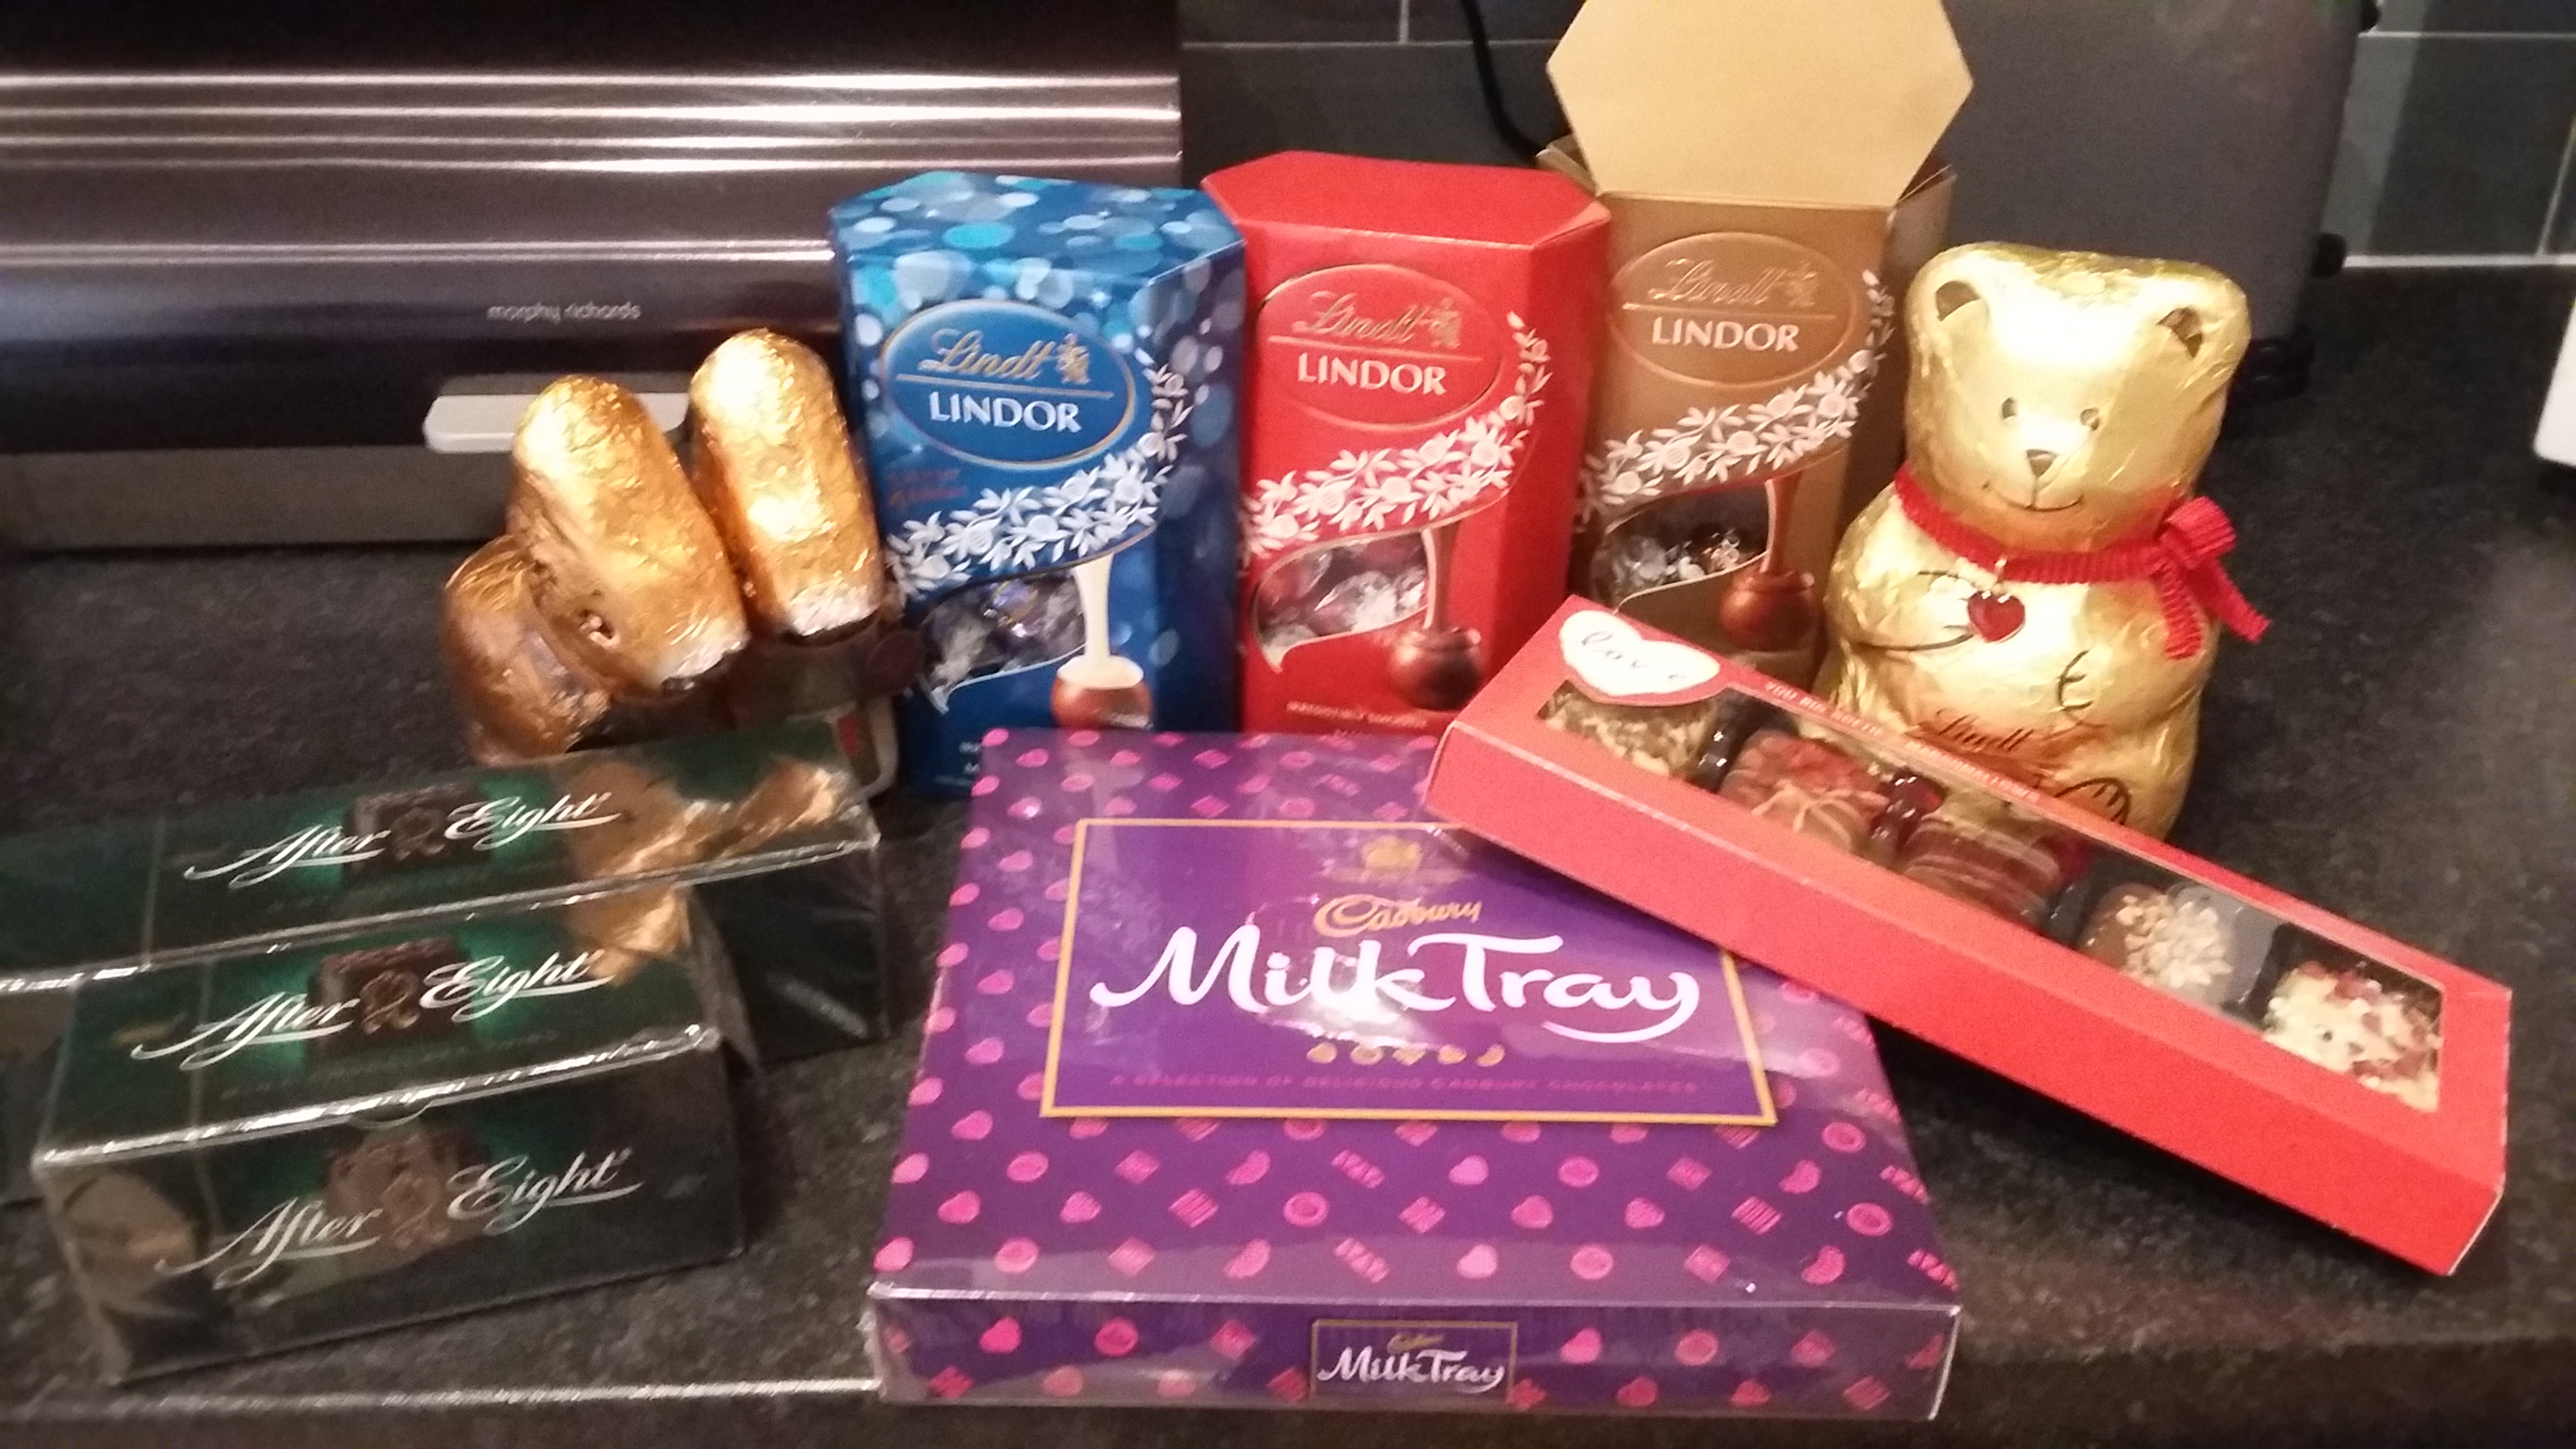 My Christmas chocolate stash